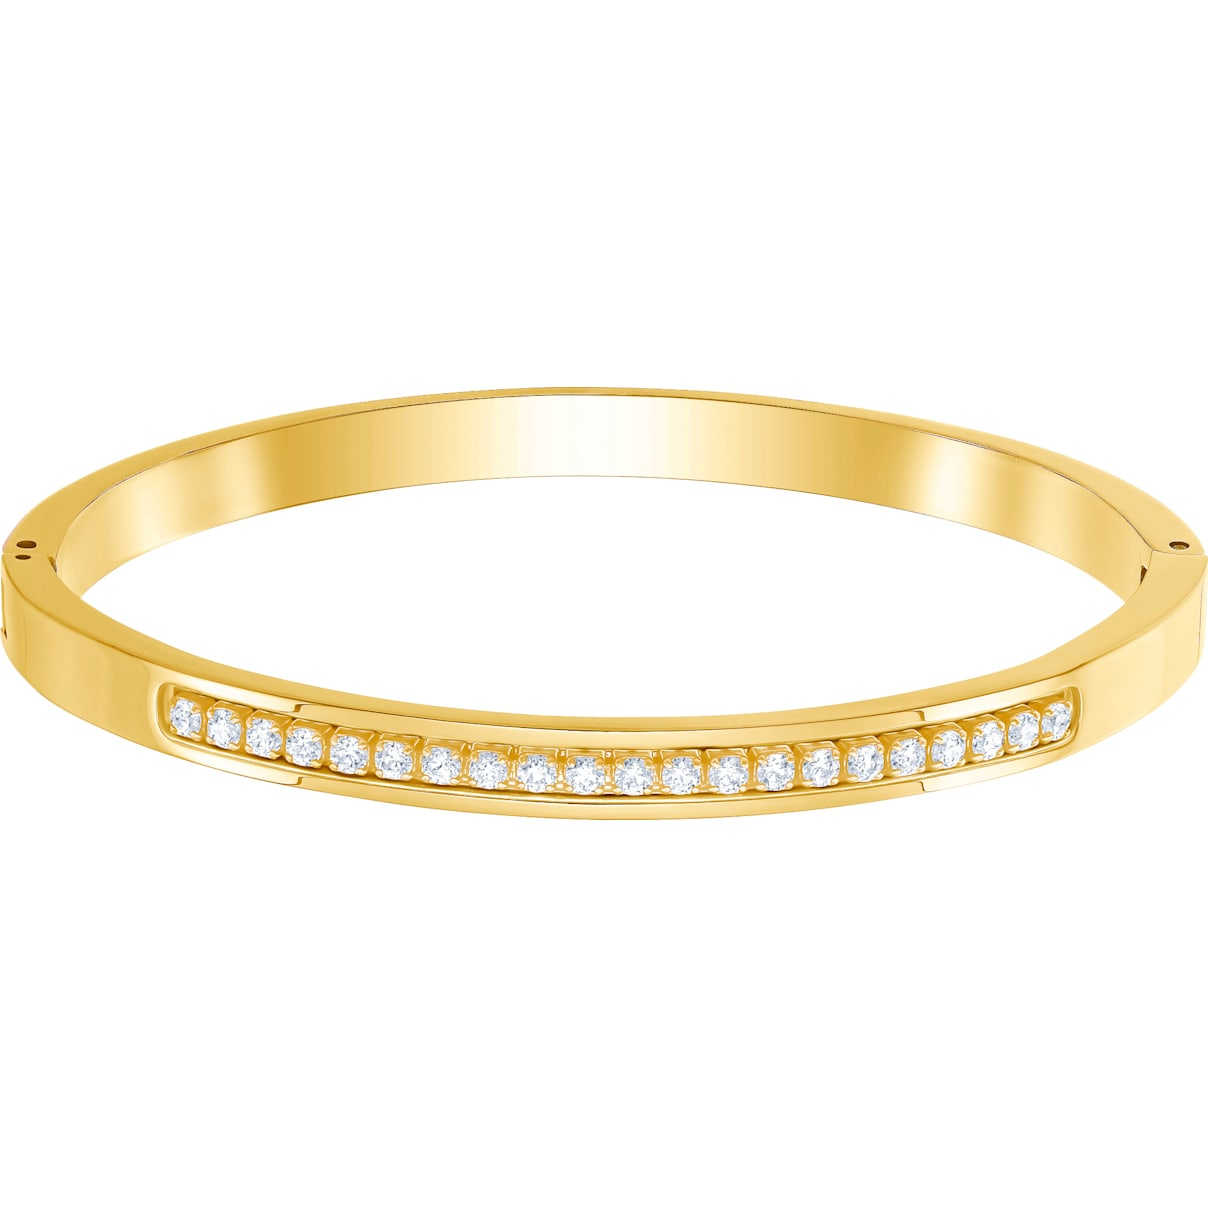 Swarovski Further Thin Bangle, White, Gold-tone plated